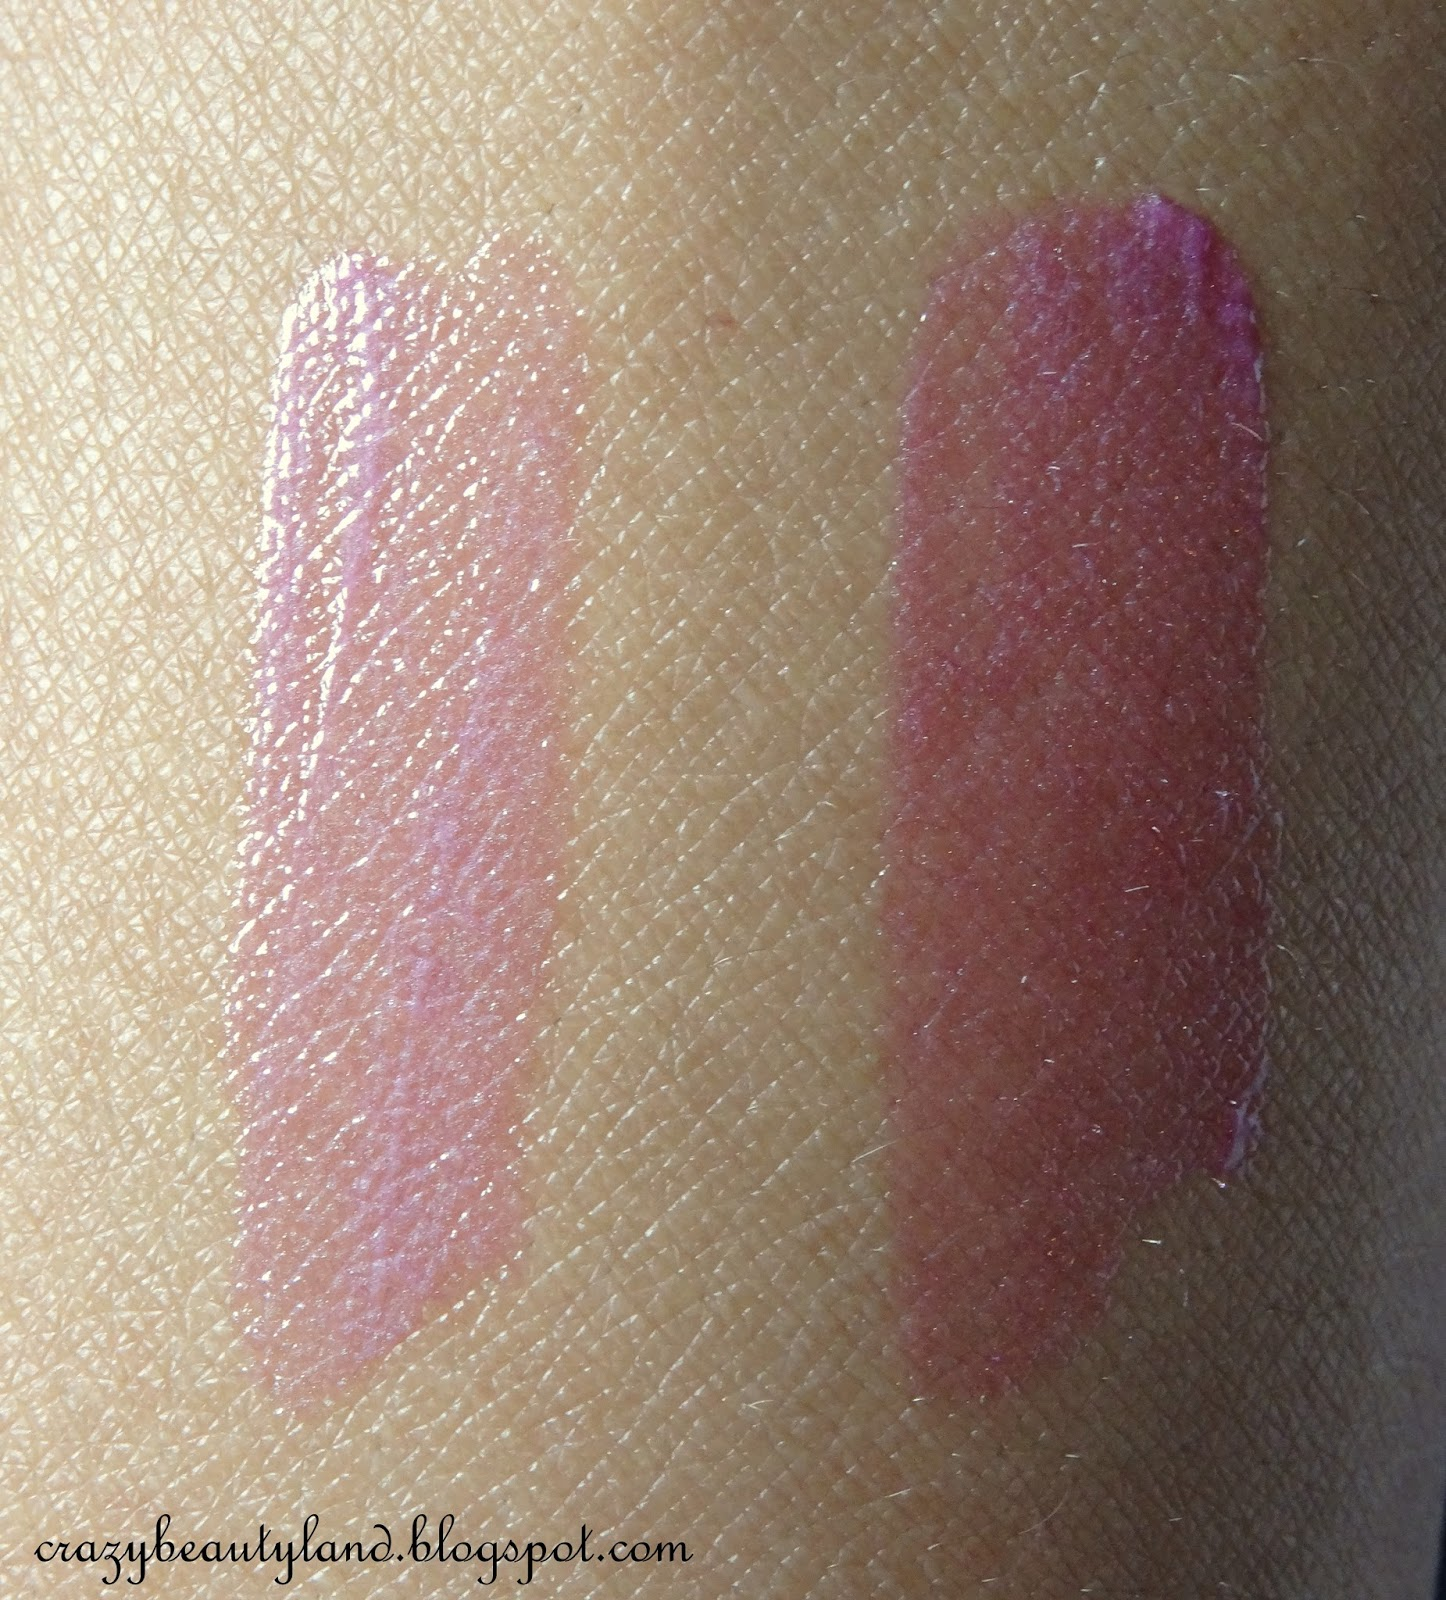 Review of L'Oreal Paris Shine Caresse Lip Color in the shade 603 Milady. Dupe of YSL Glossy Stains. Swatches of Milady